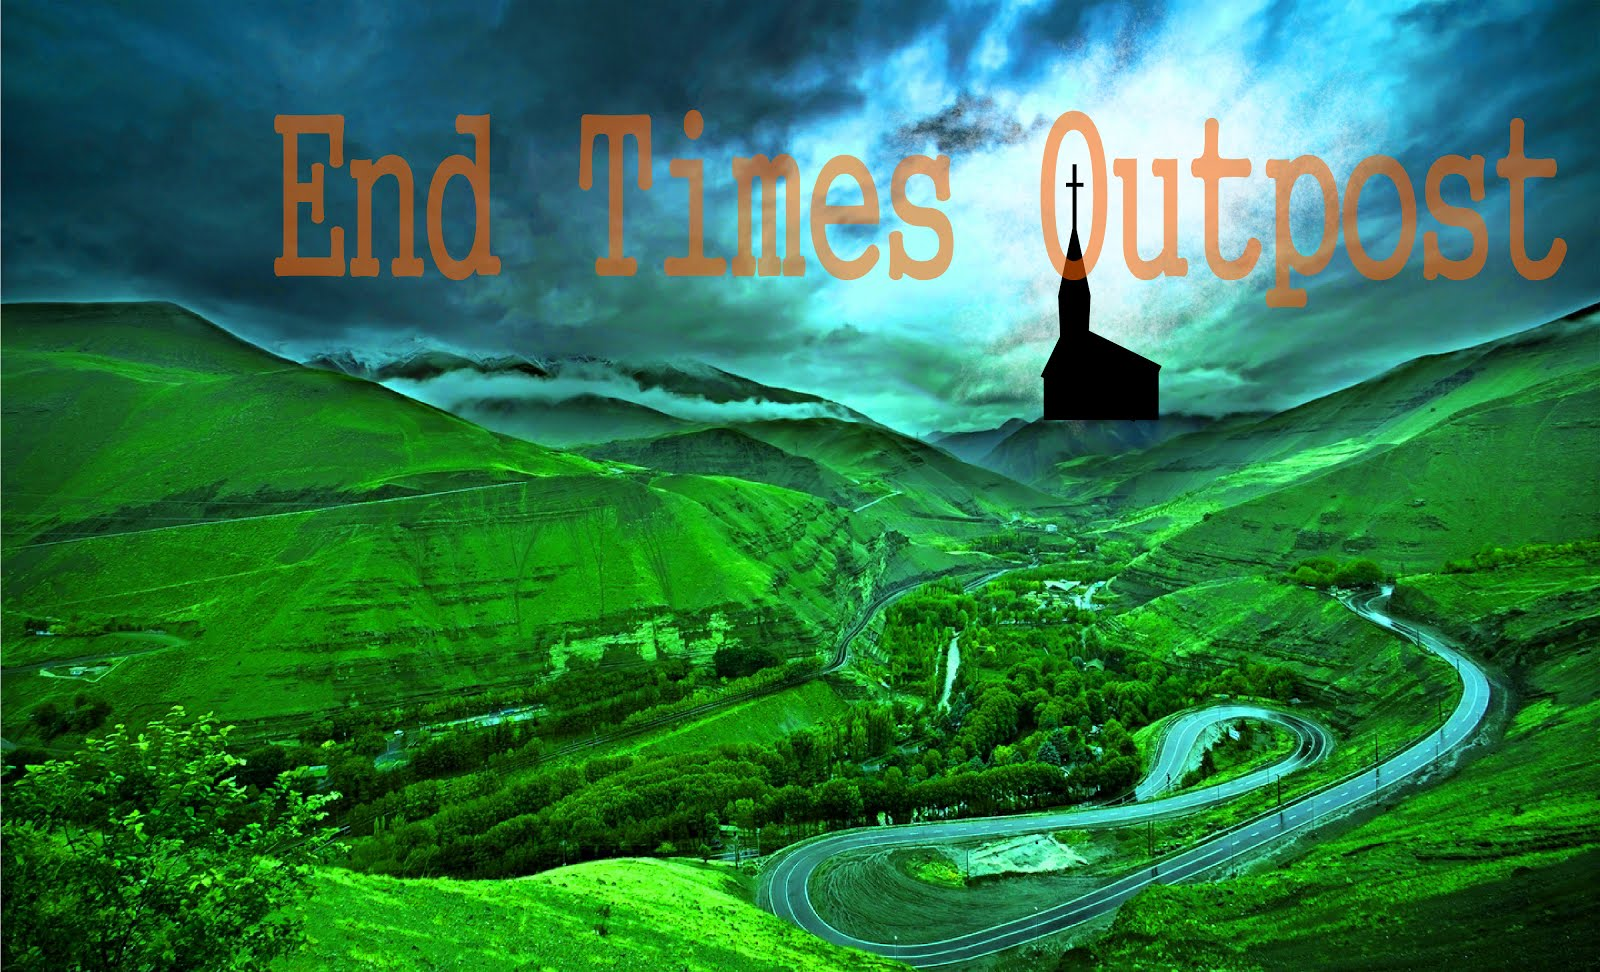 End Times Outpost